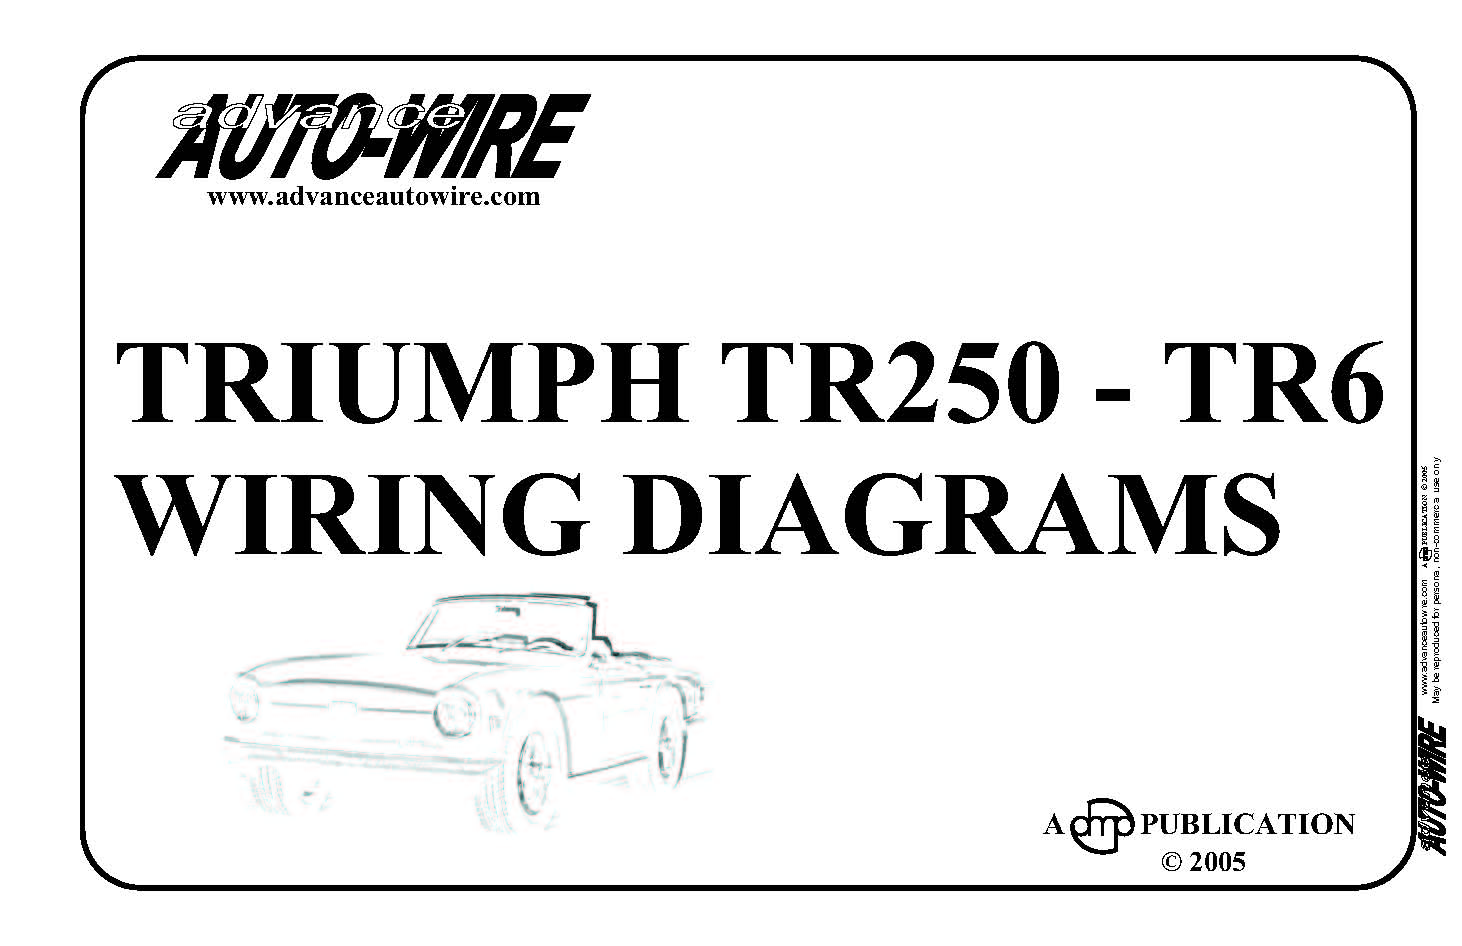 medium resolution of vitessesteve blog triumph tr250 tr6 wiring diagrams in colourtriumph tr250 tr6 wiring diagrams in